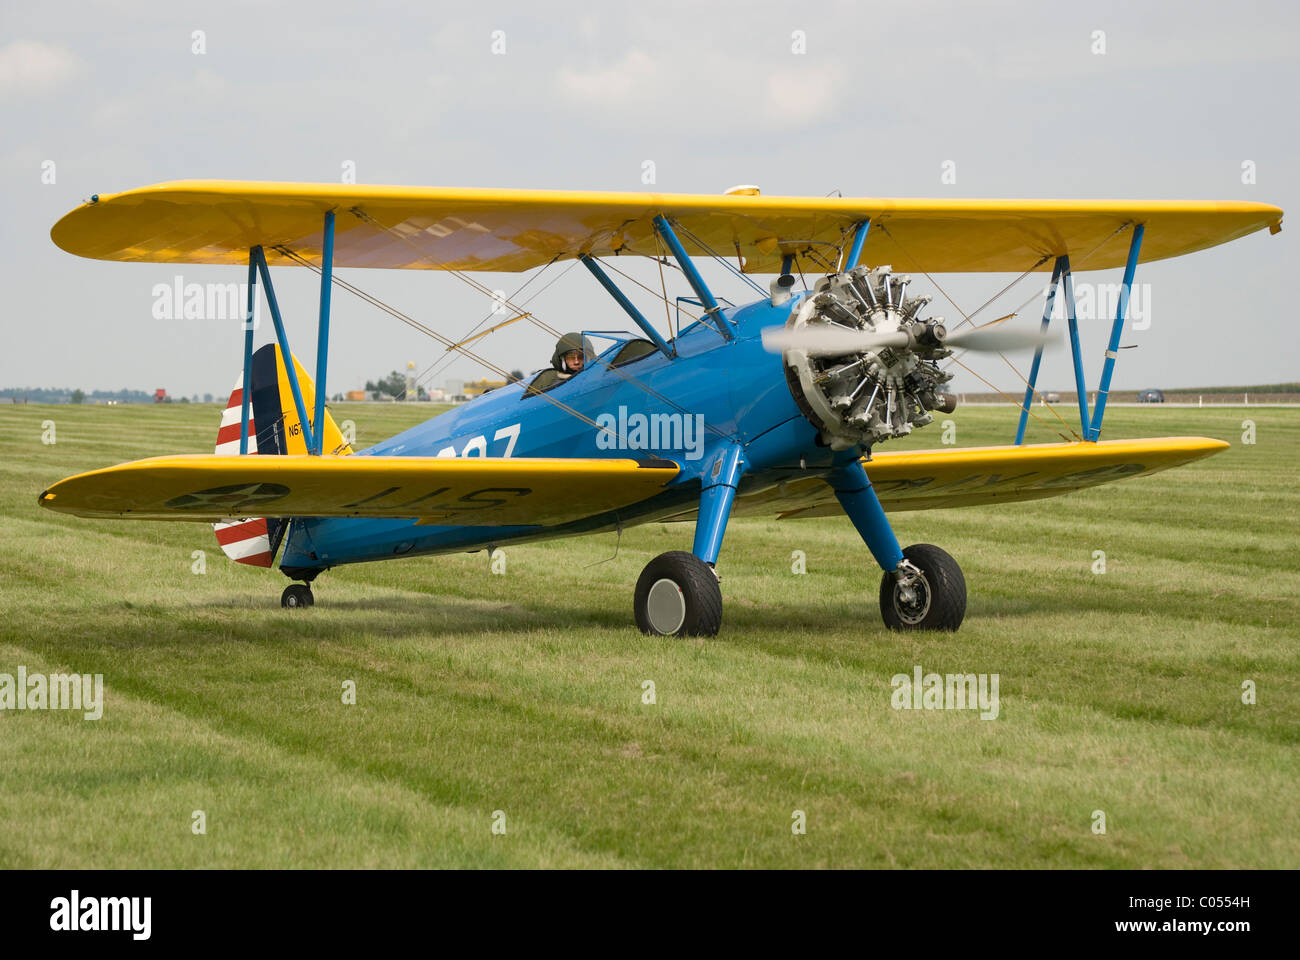 Biplane with radial engine - aircraft of type Boeing Stearman E75 on the ground, taxiing - Stock Image